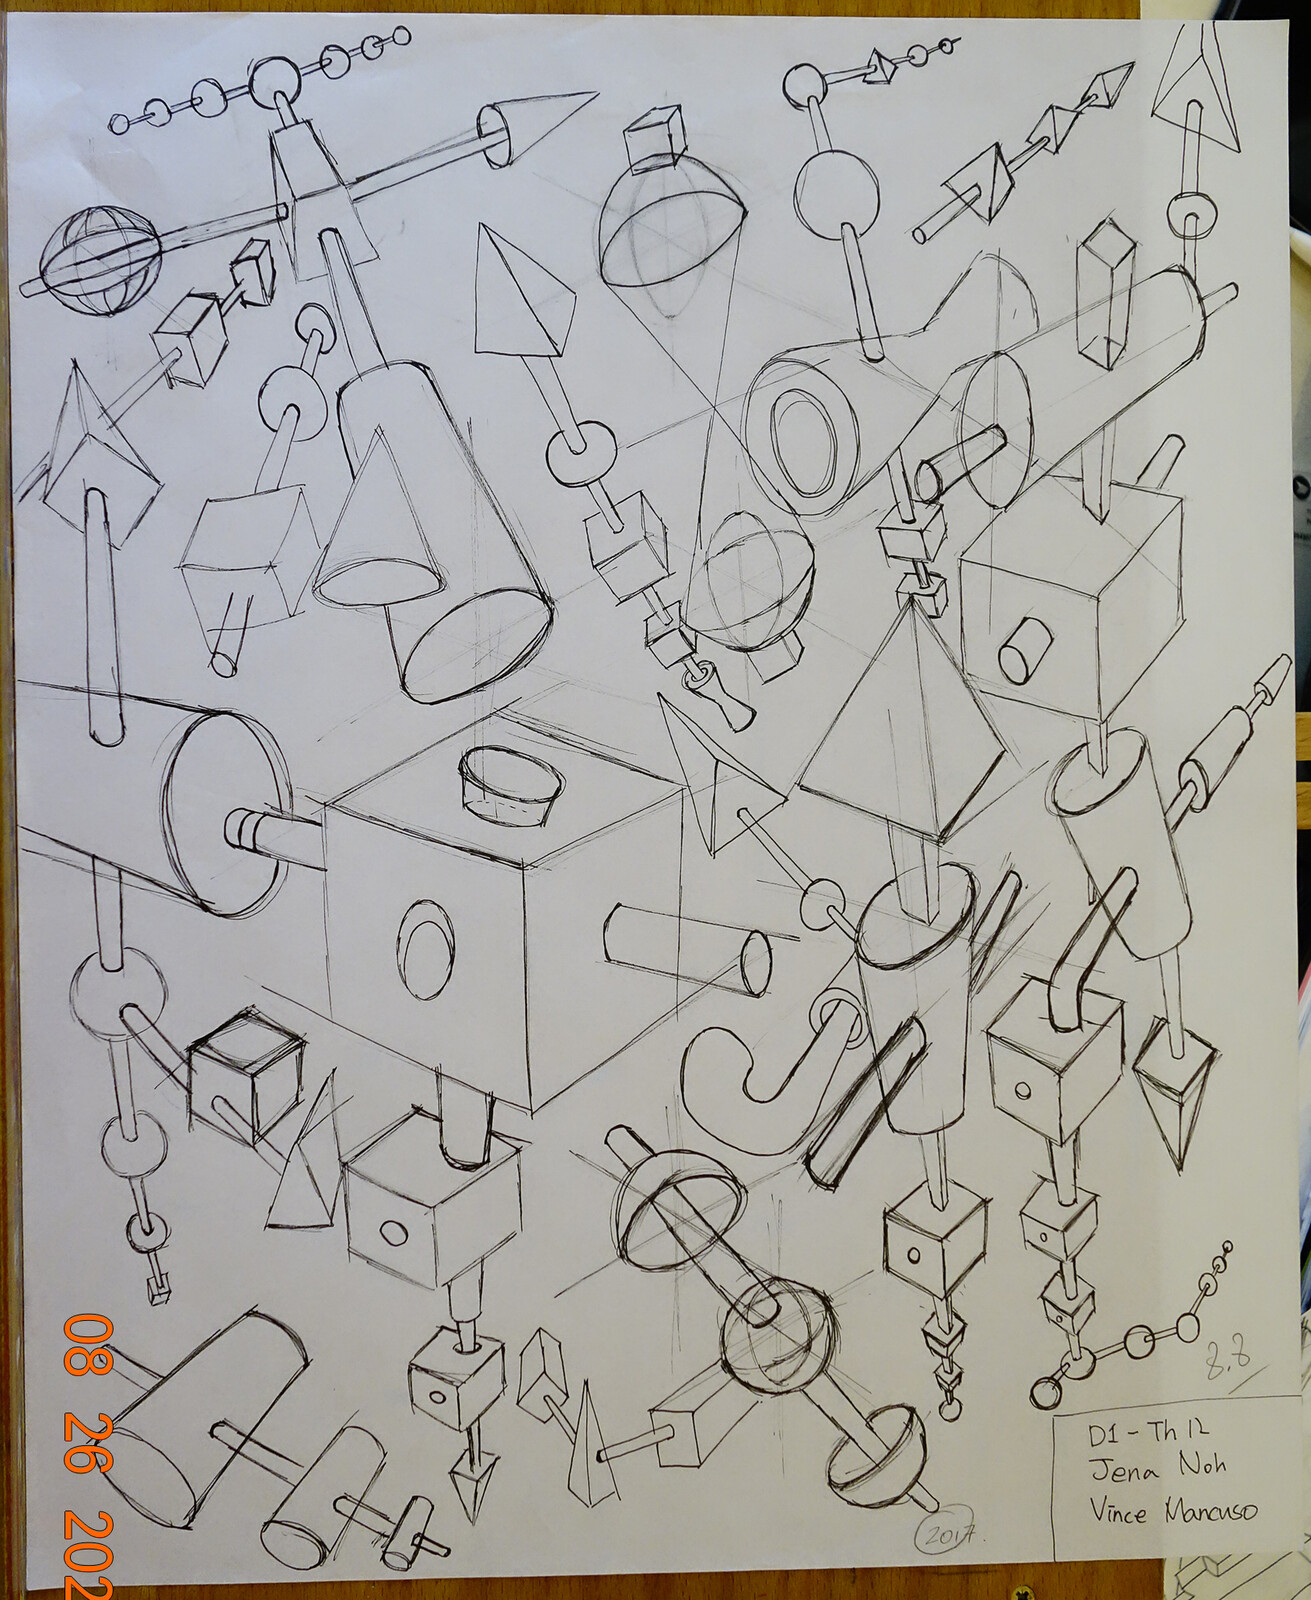 Project 3: 150 minimum, draw all the forms, spheres, cones, cylinders, cubes and pyramids. Line only